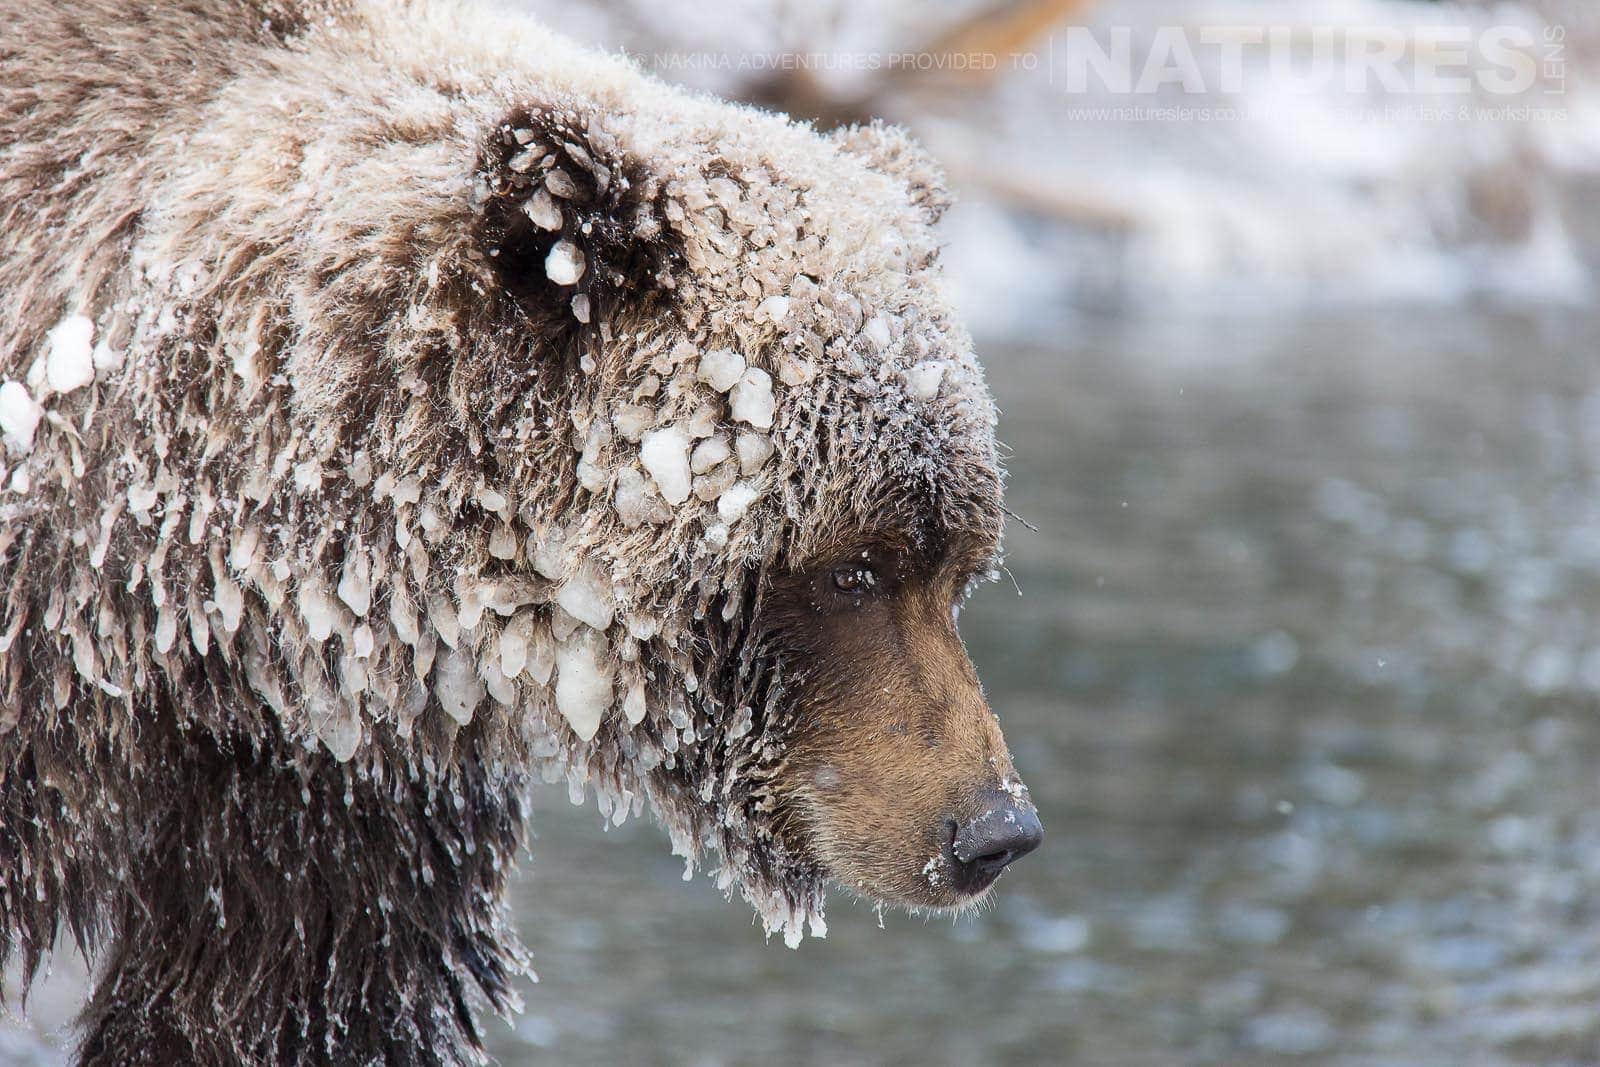 An Ice Covered Grizzly Bear Of The Yukon Typical Of The Kind Of Image That May Be Captured On The NaturesLens Ice Bears Of The Yukon Photographic Holiday